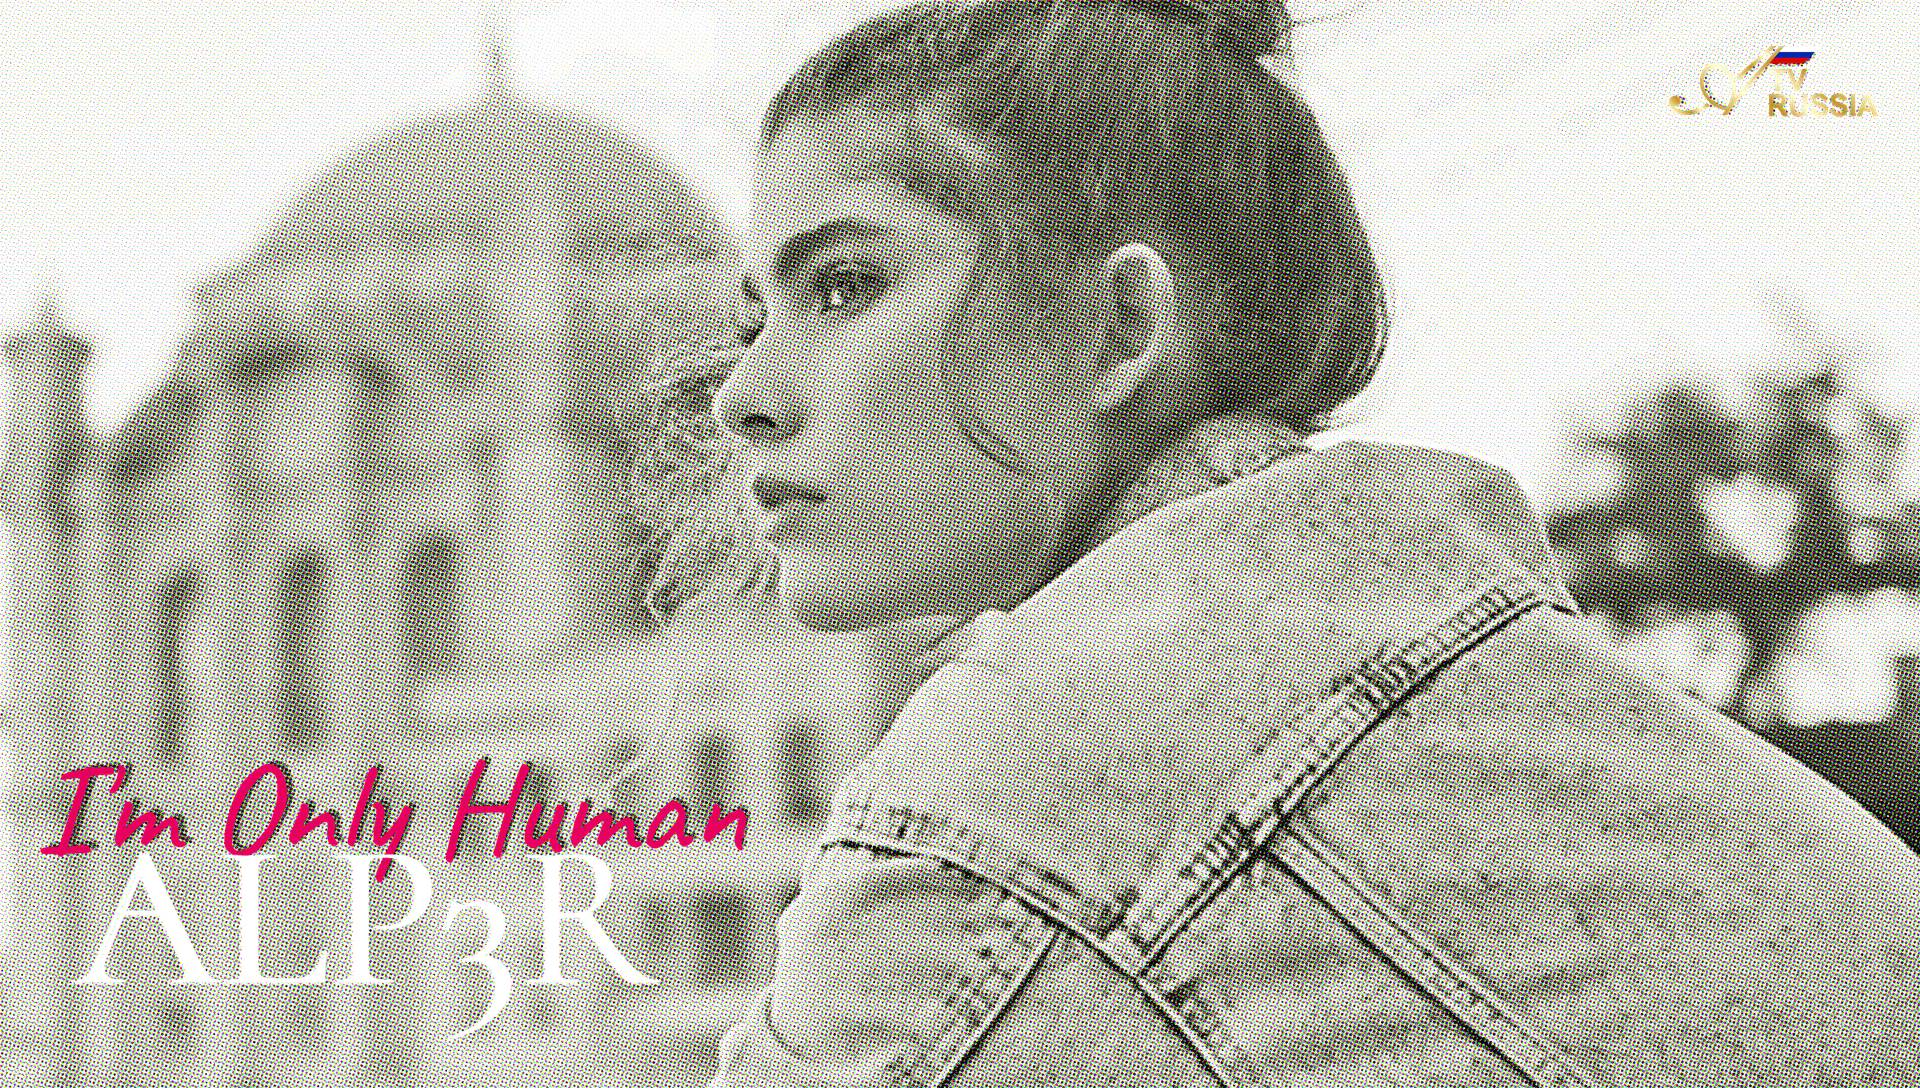 ALP3R - I'm Only Human